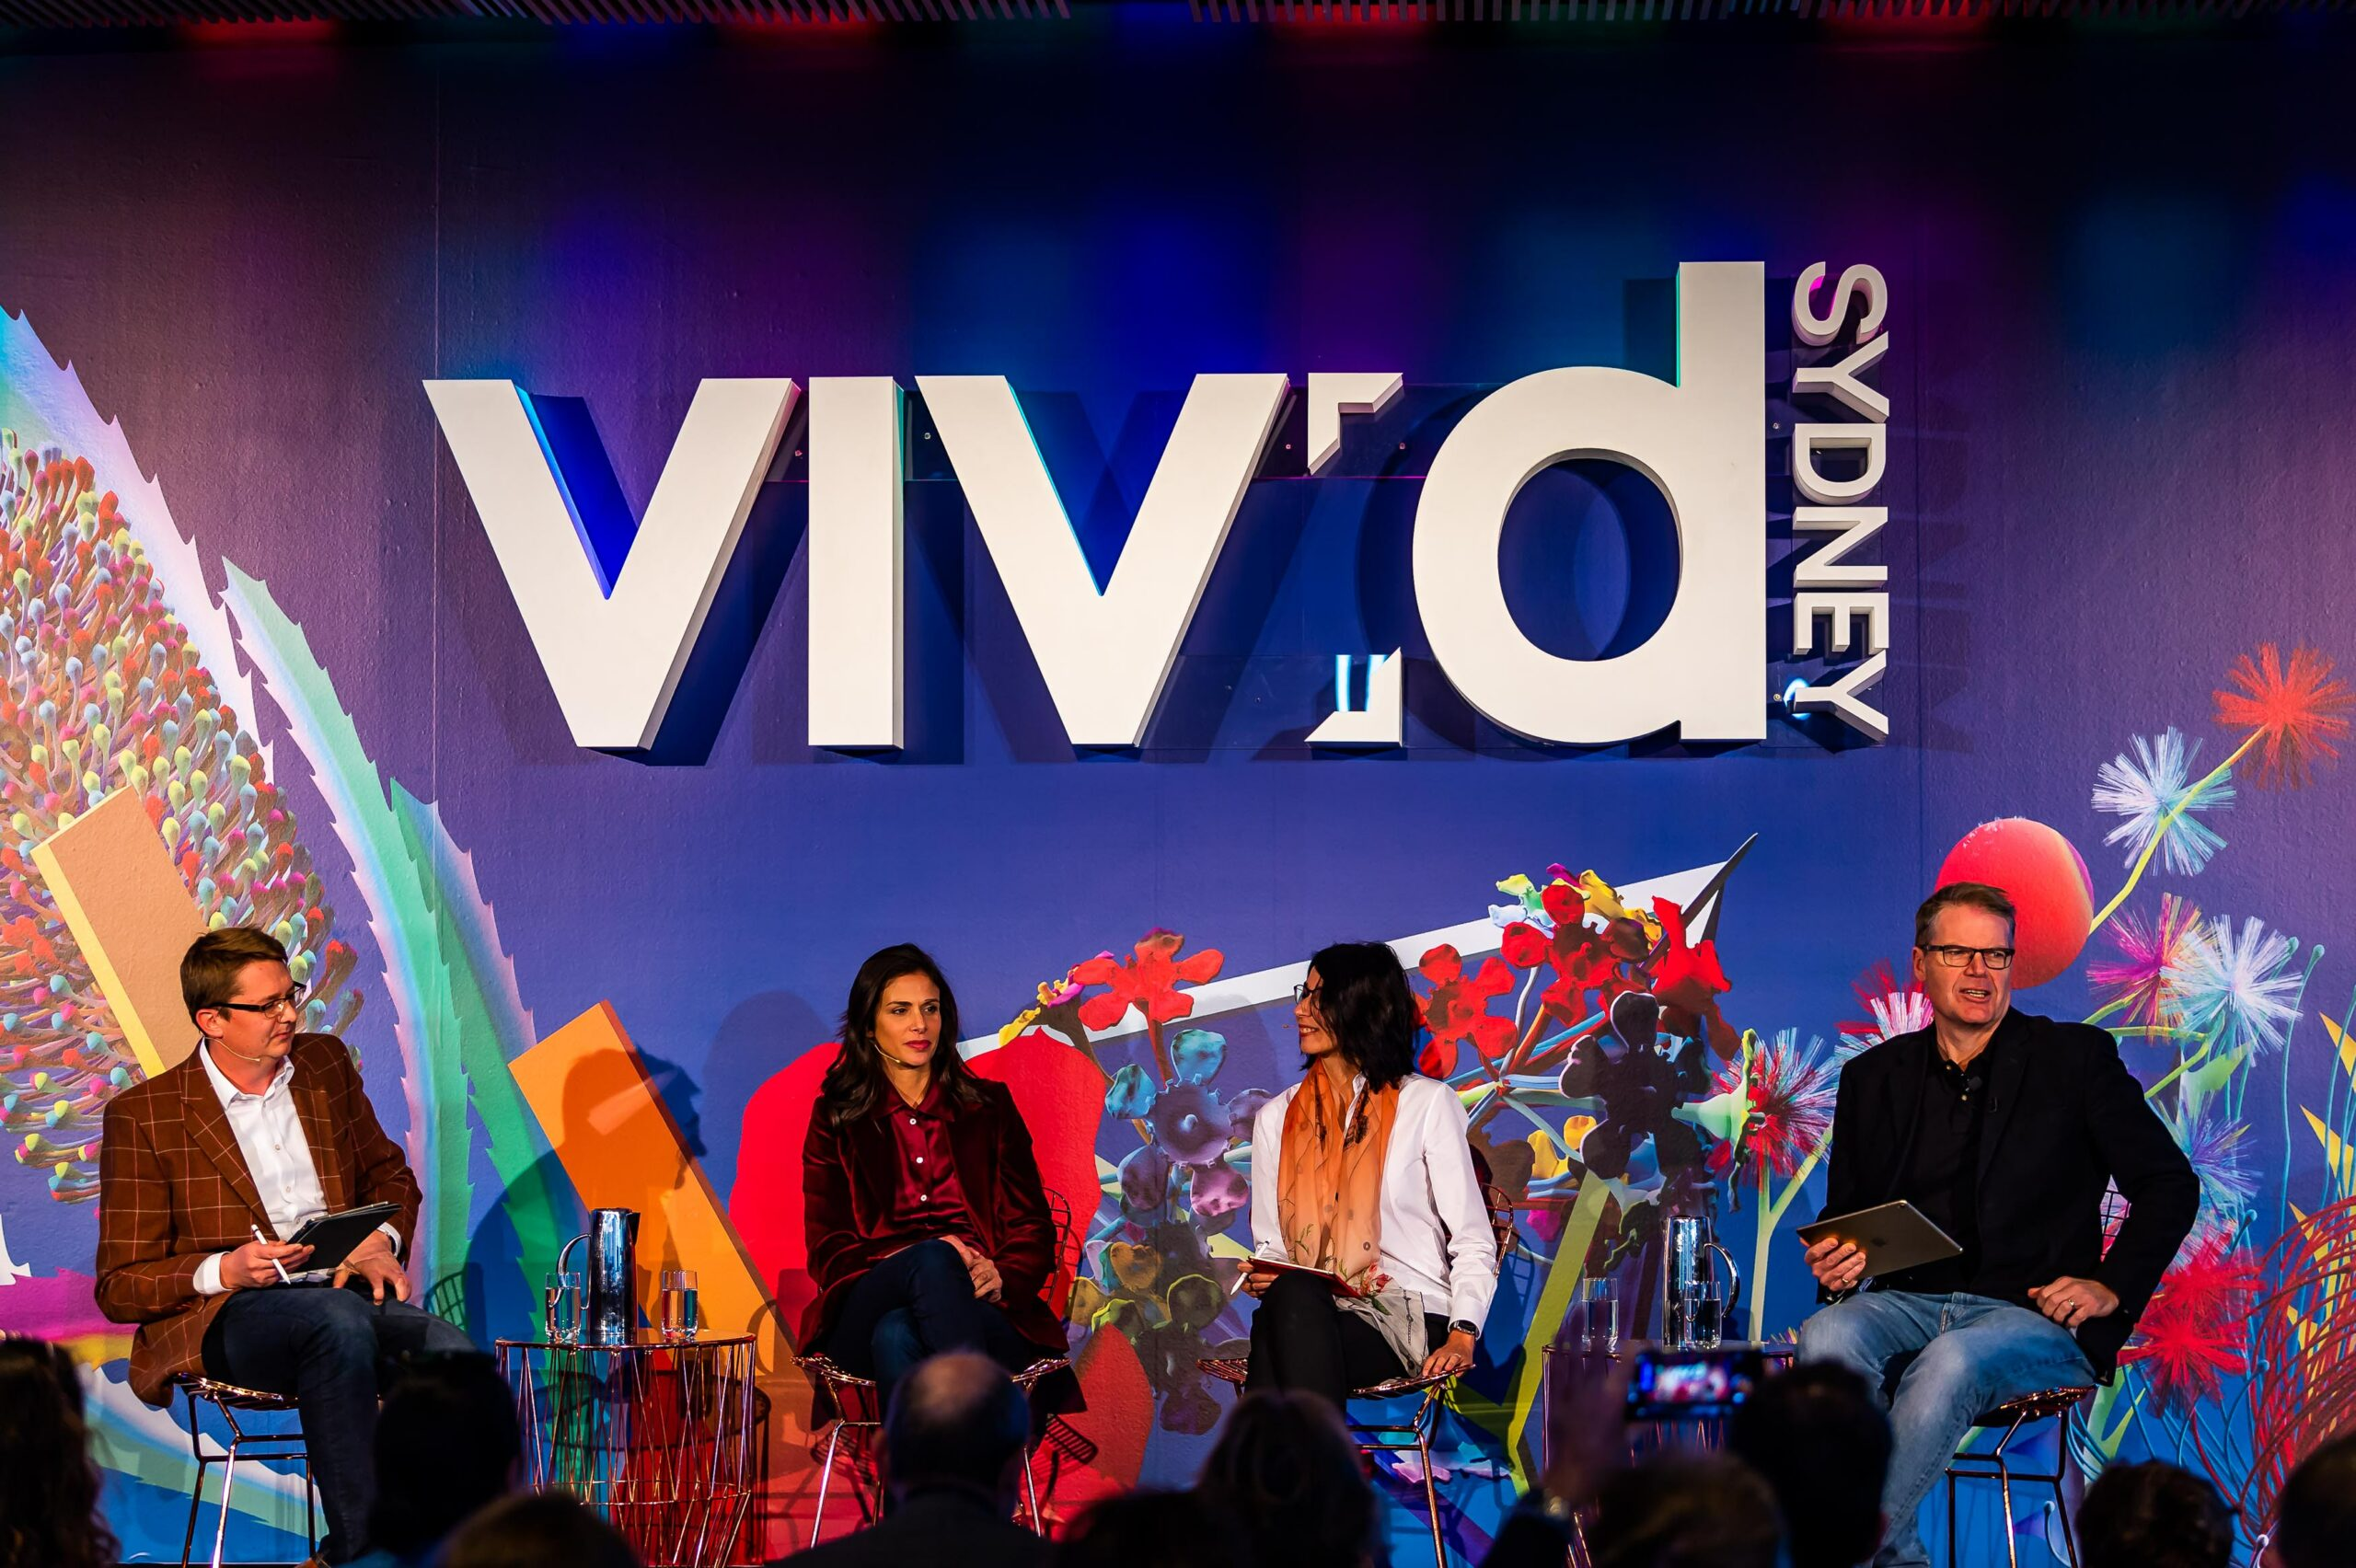 Image of the Mummy, can I marry my Avatar? event held as part of Vivid Sydney 2018 (image credit: Destination NSW)